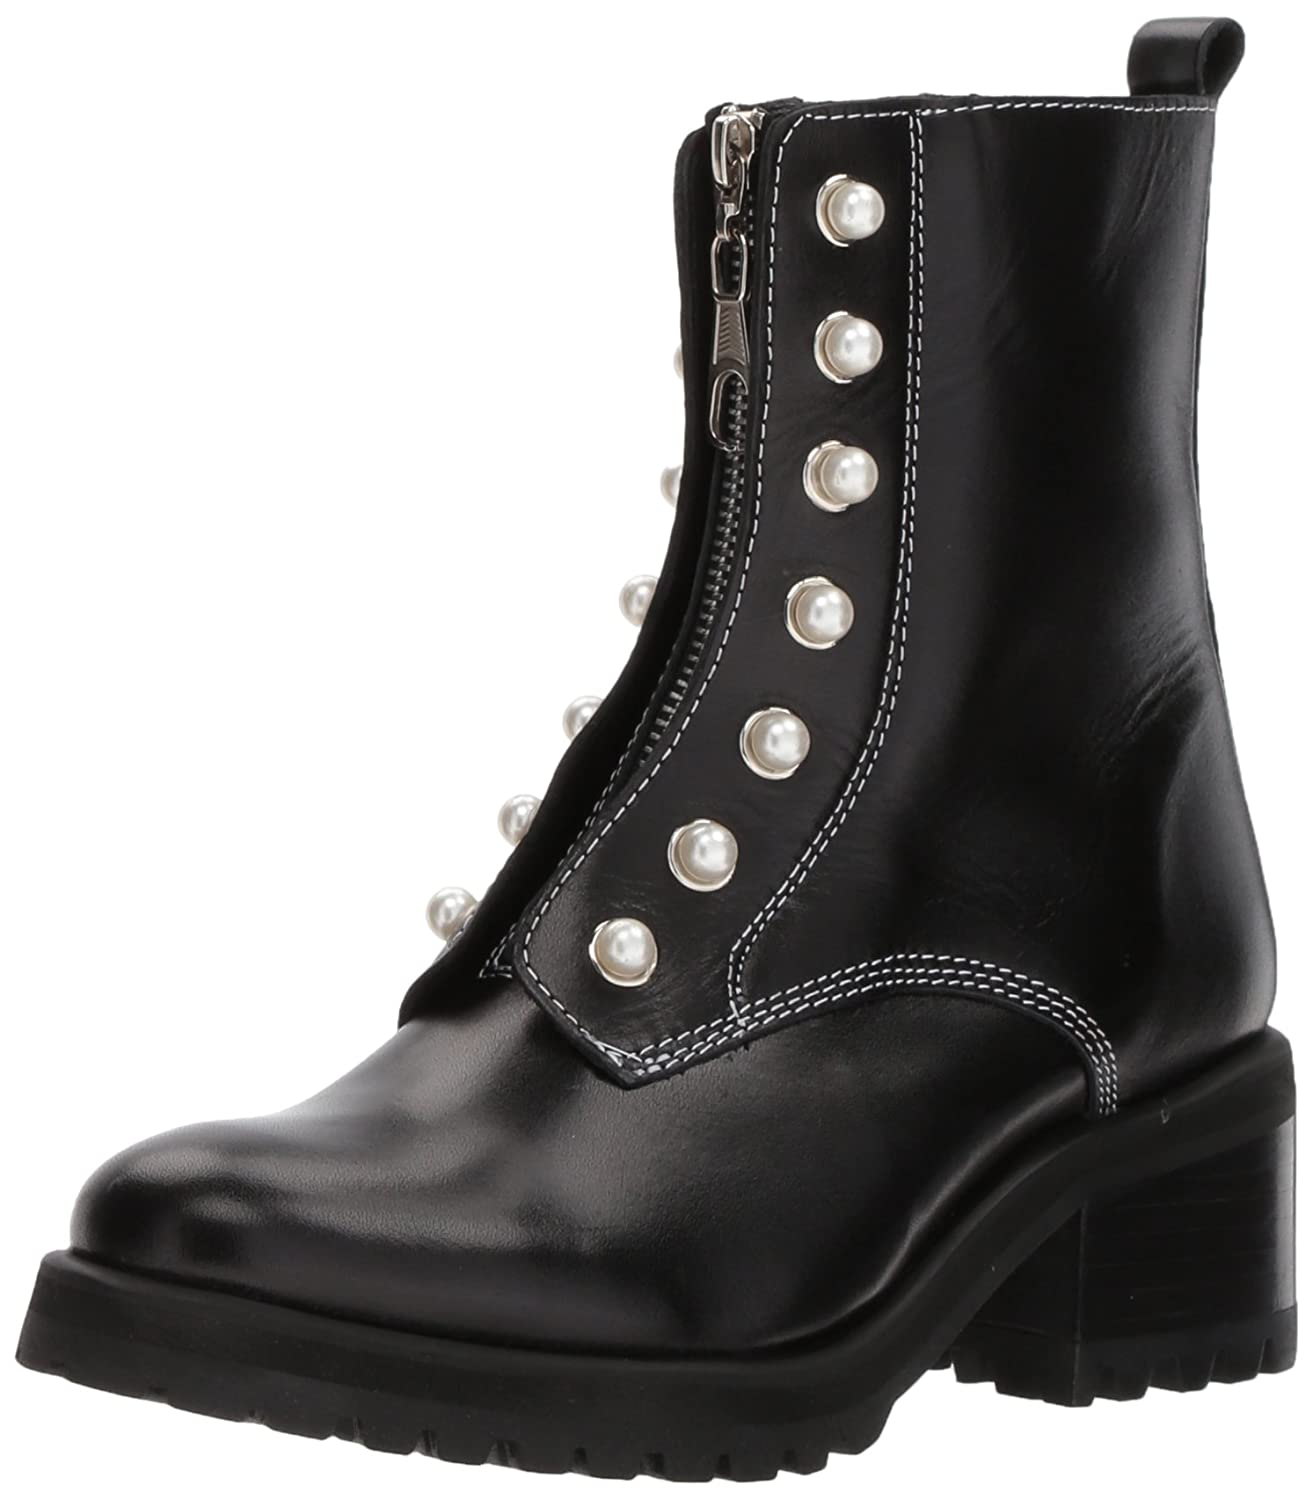 Steve Madden Women's Granite Combat Boot B075NLRCP6 8.5 B(M) US|Black Leather